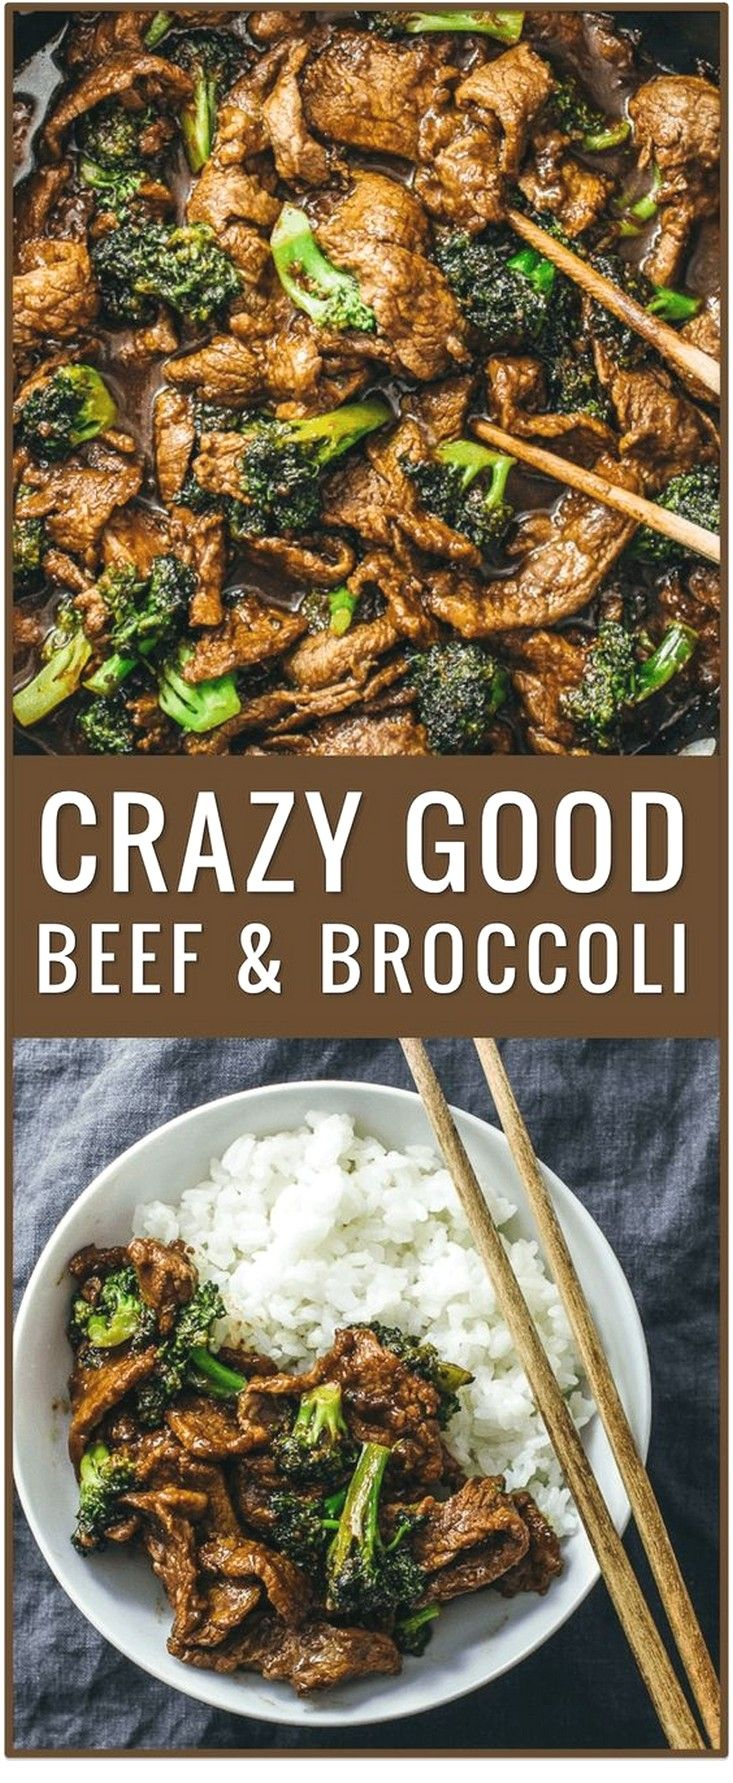 Crazy Good Beef And Broccoli | Easy Beef Recipes Ideas images